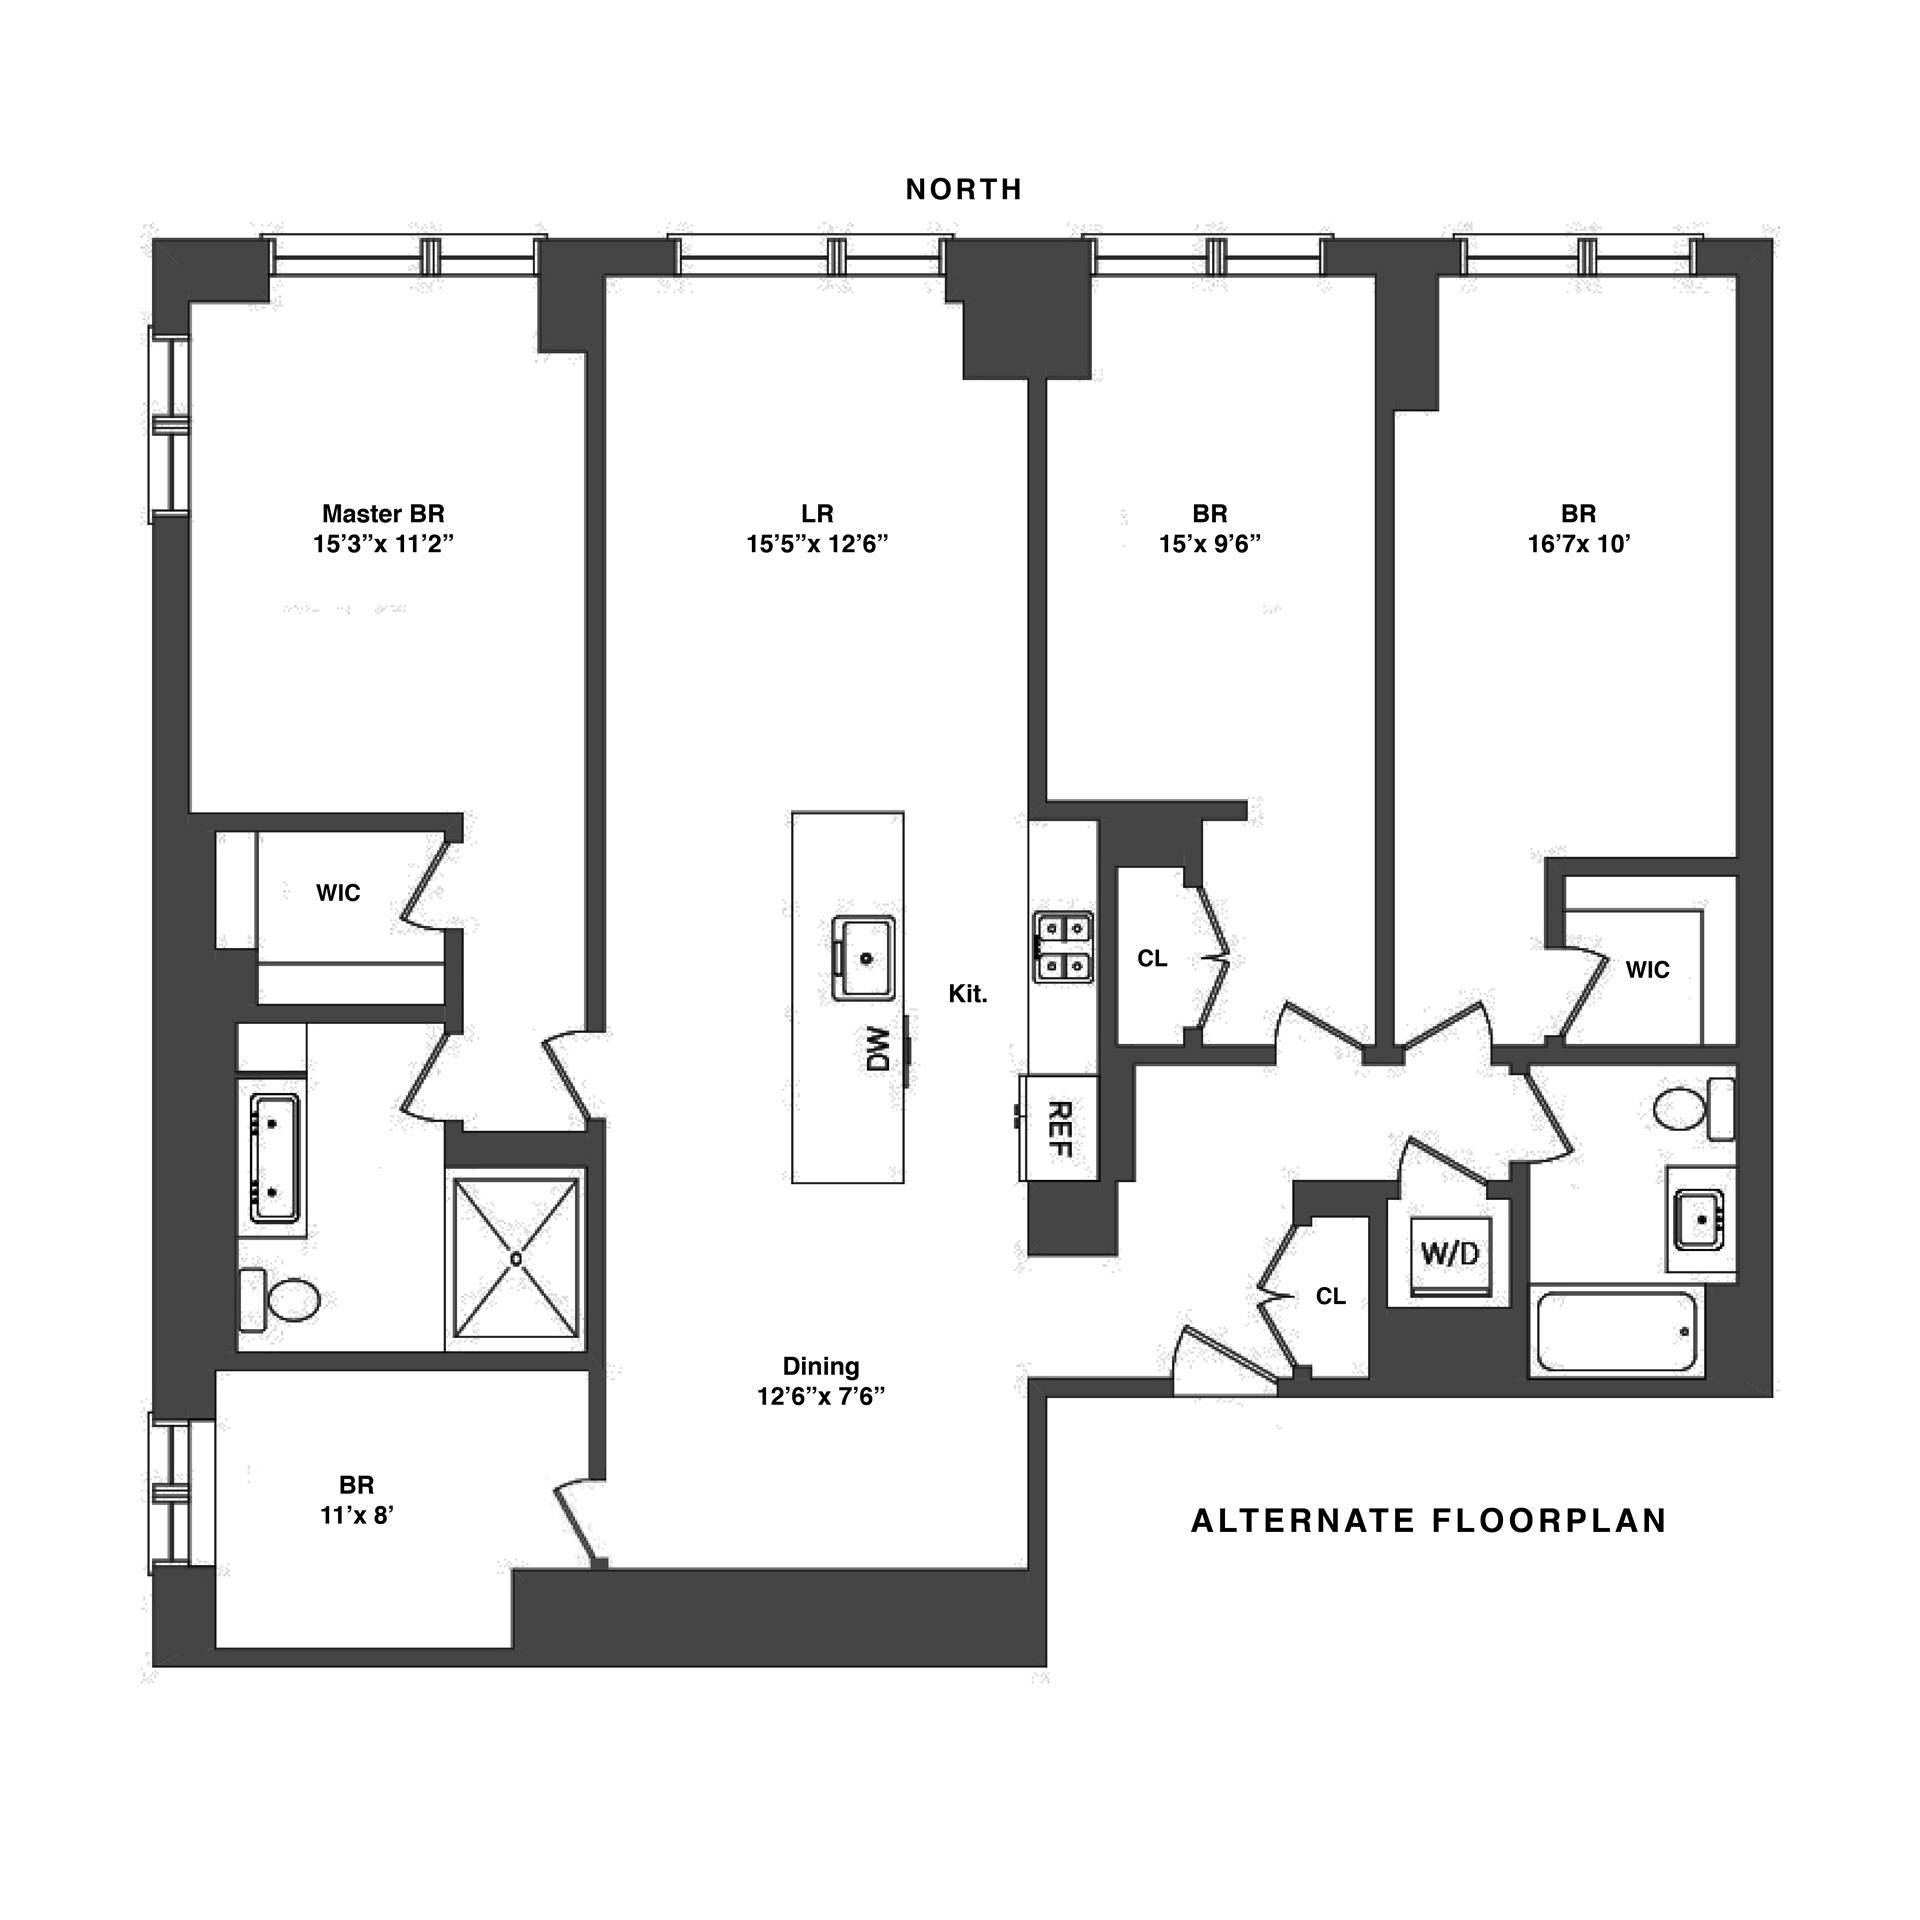 Floor plan of THE ADELINE, 23 West 116TH ST, 5A - Harlem, New York